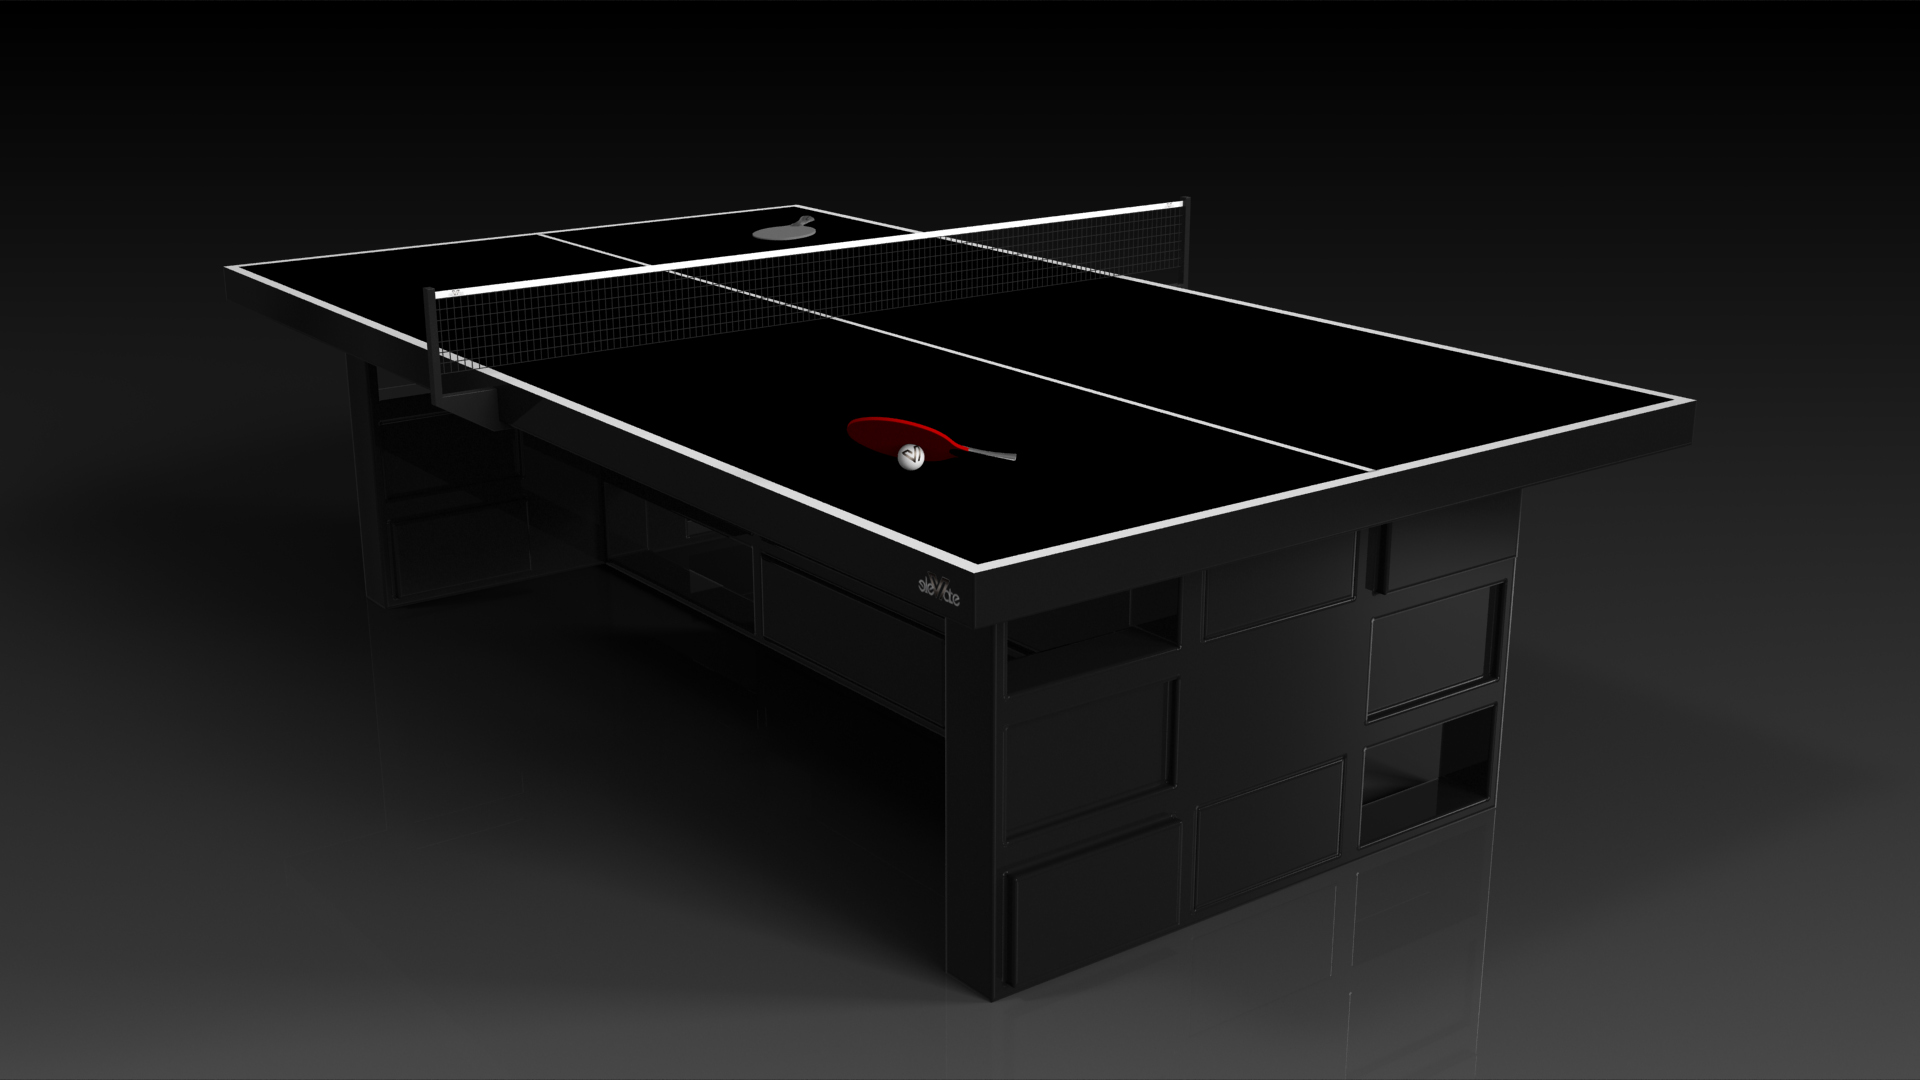 Elevate Customs modern design quota Ping Pong Table tennis black 4